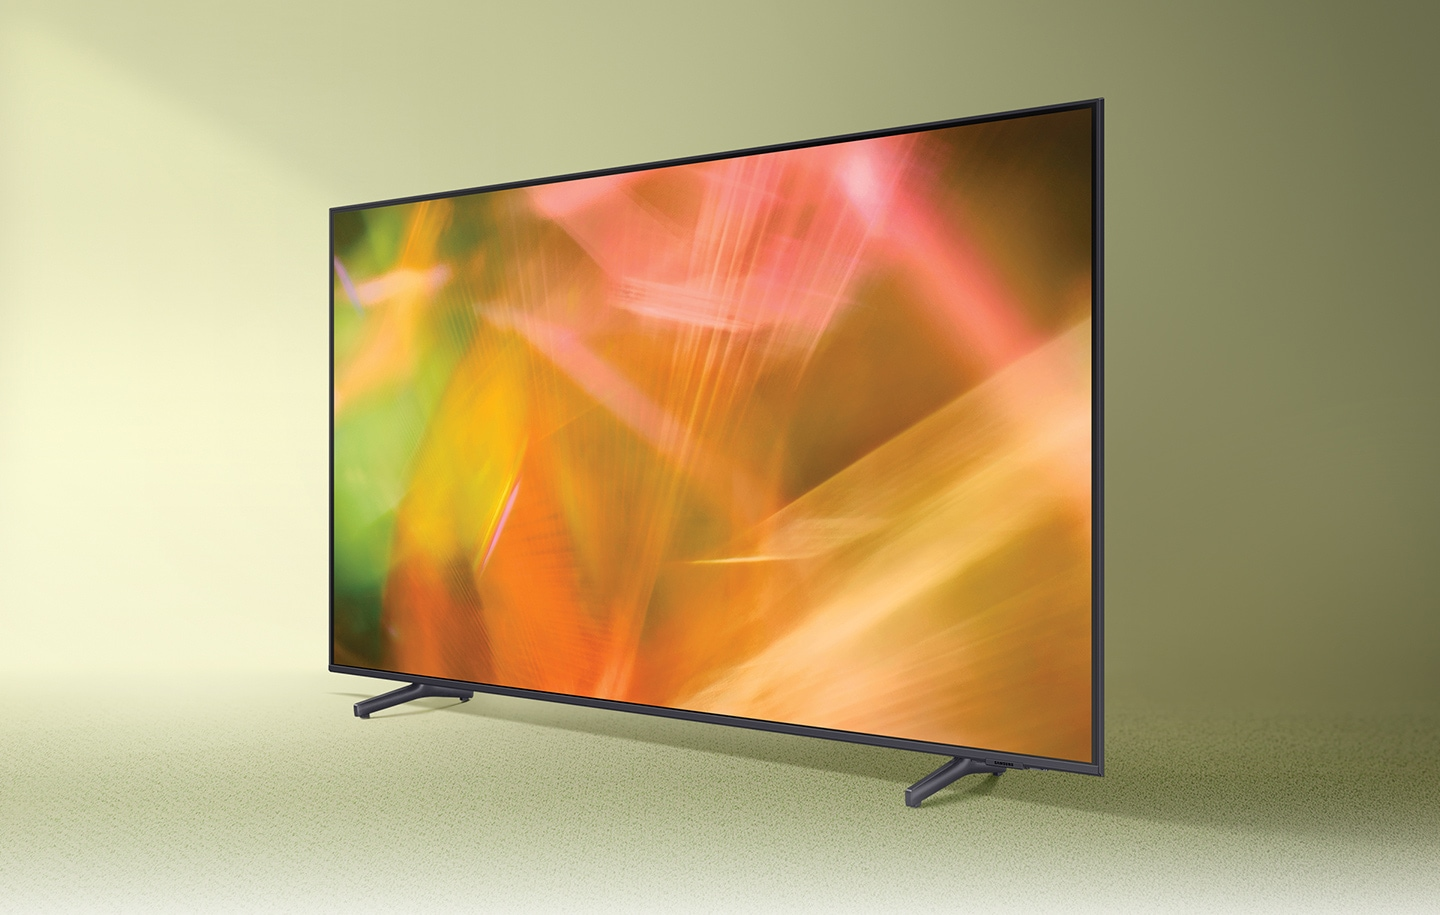 AU8000 displays intricately blended colour graphics which demonstrate vivid crystal colour.